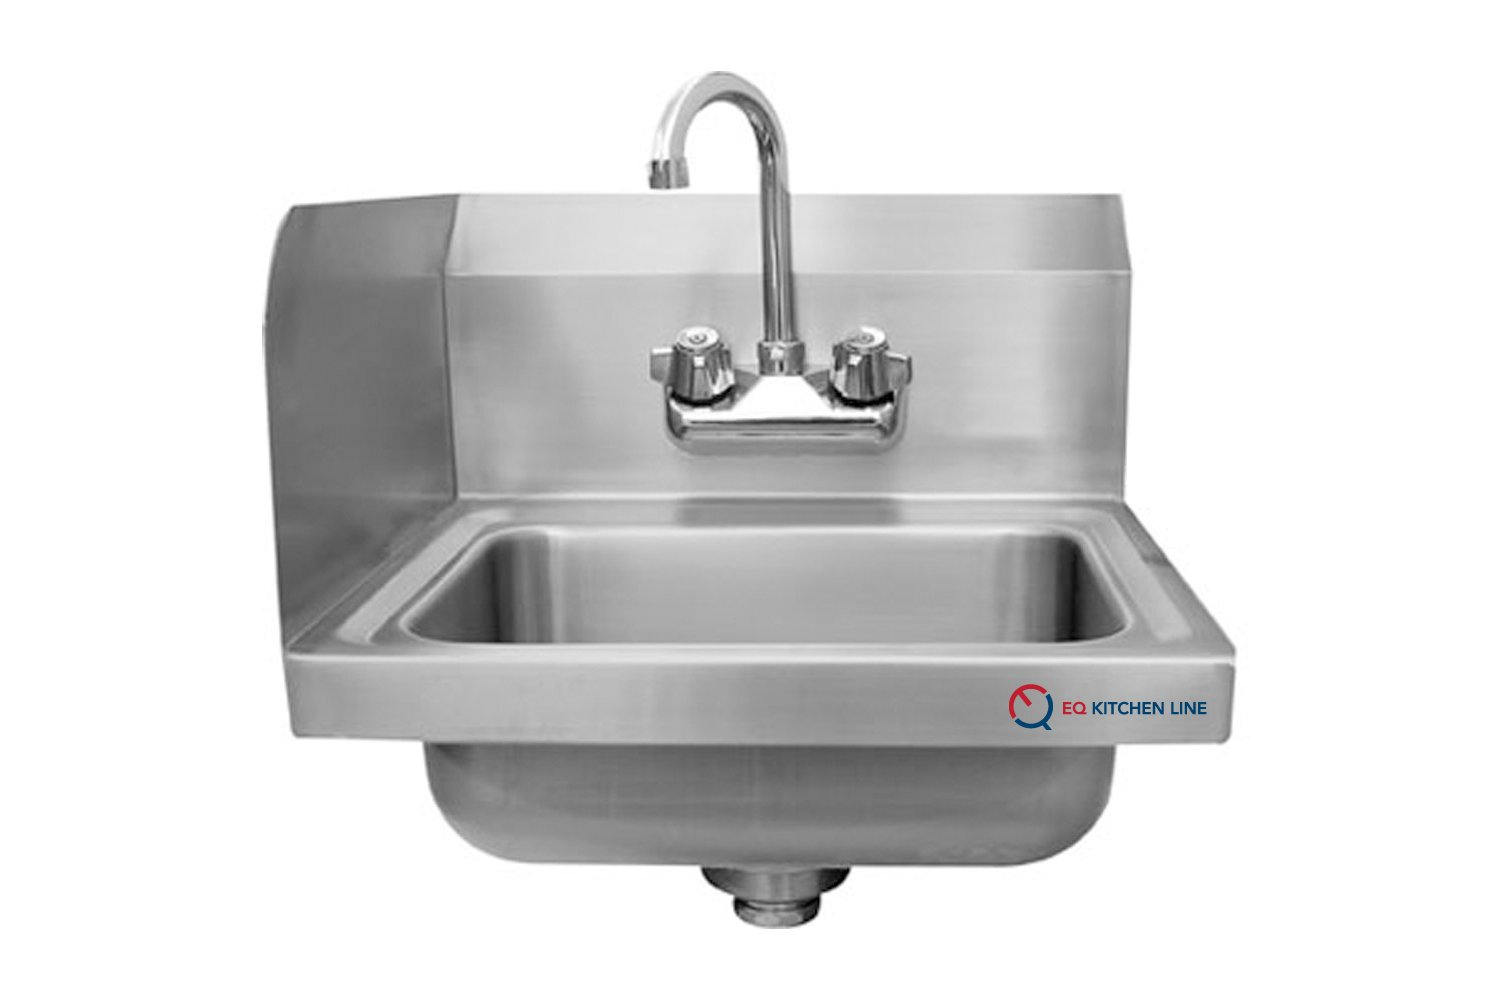 EQ Kitchen Line Stainless Steel Commercial Compartment Sink, 15.75''L x 15.00''W x 13.00''H